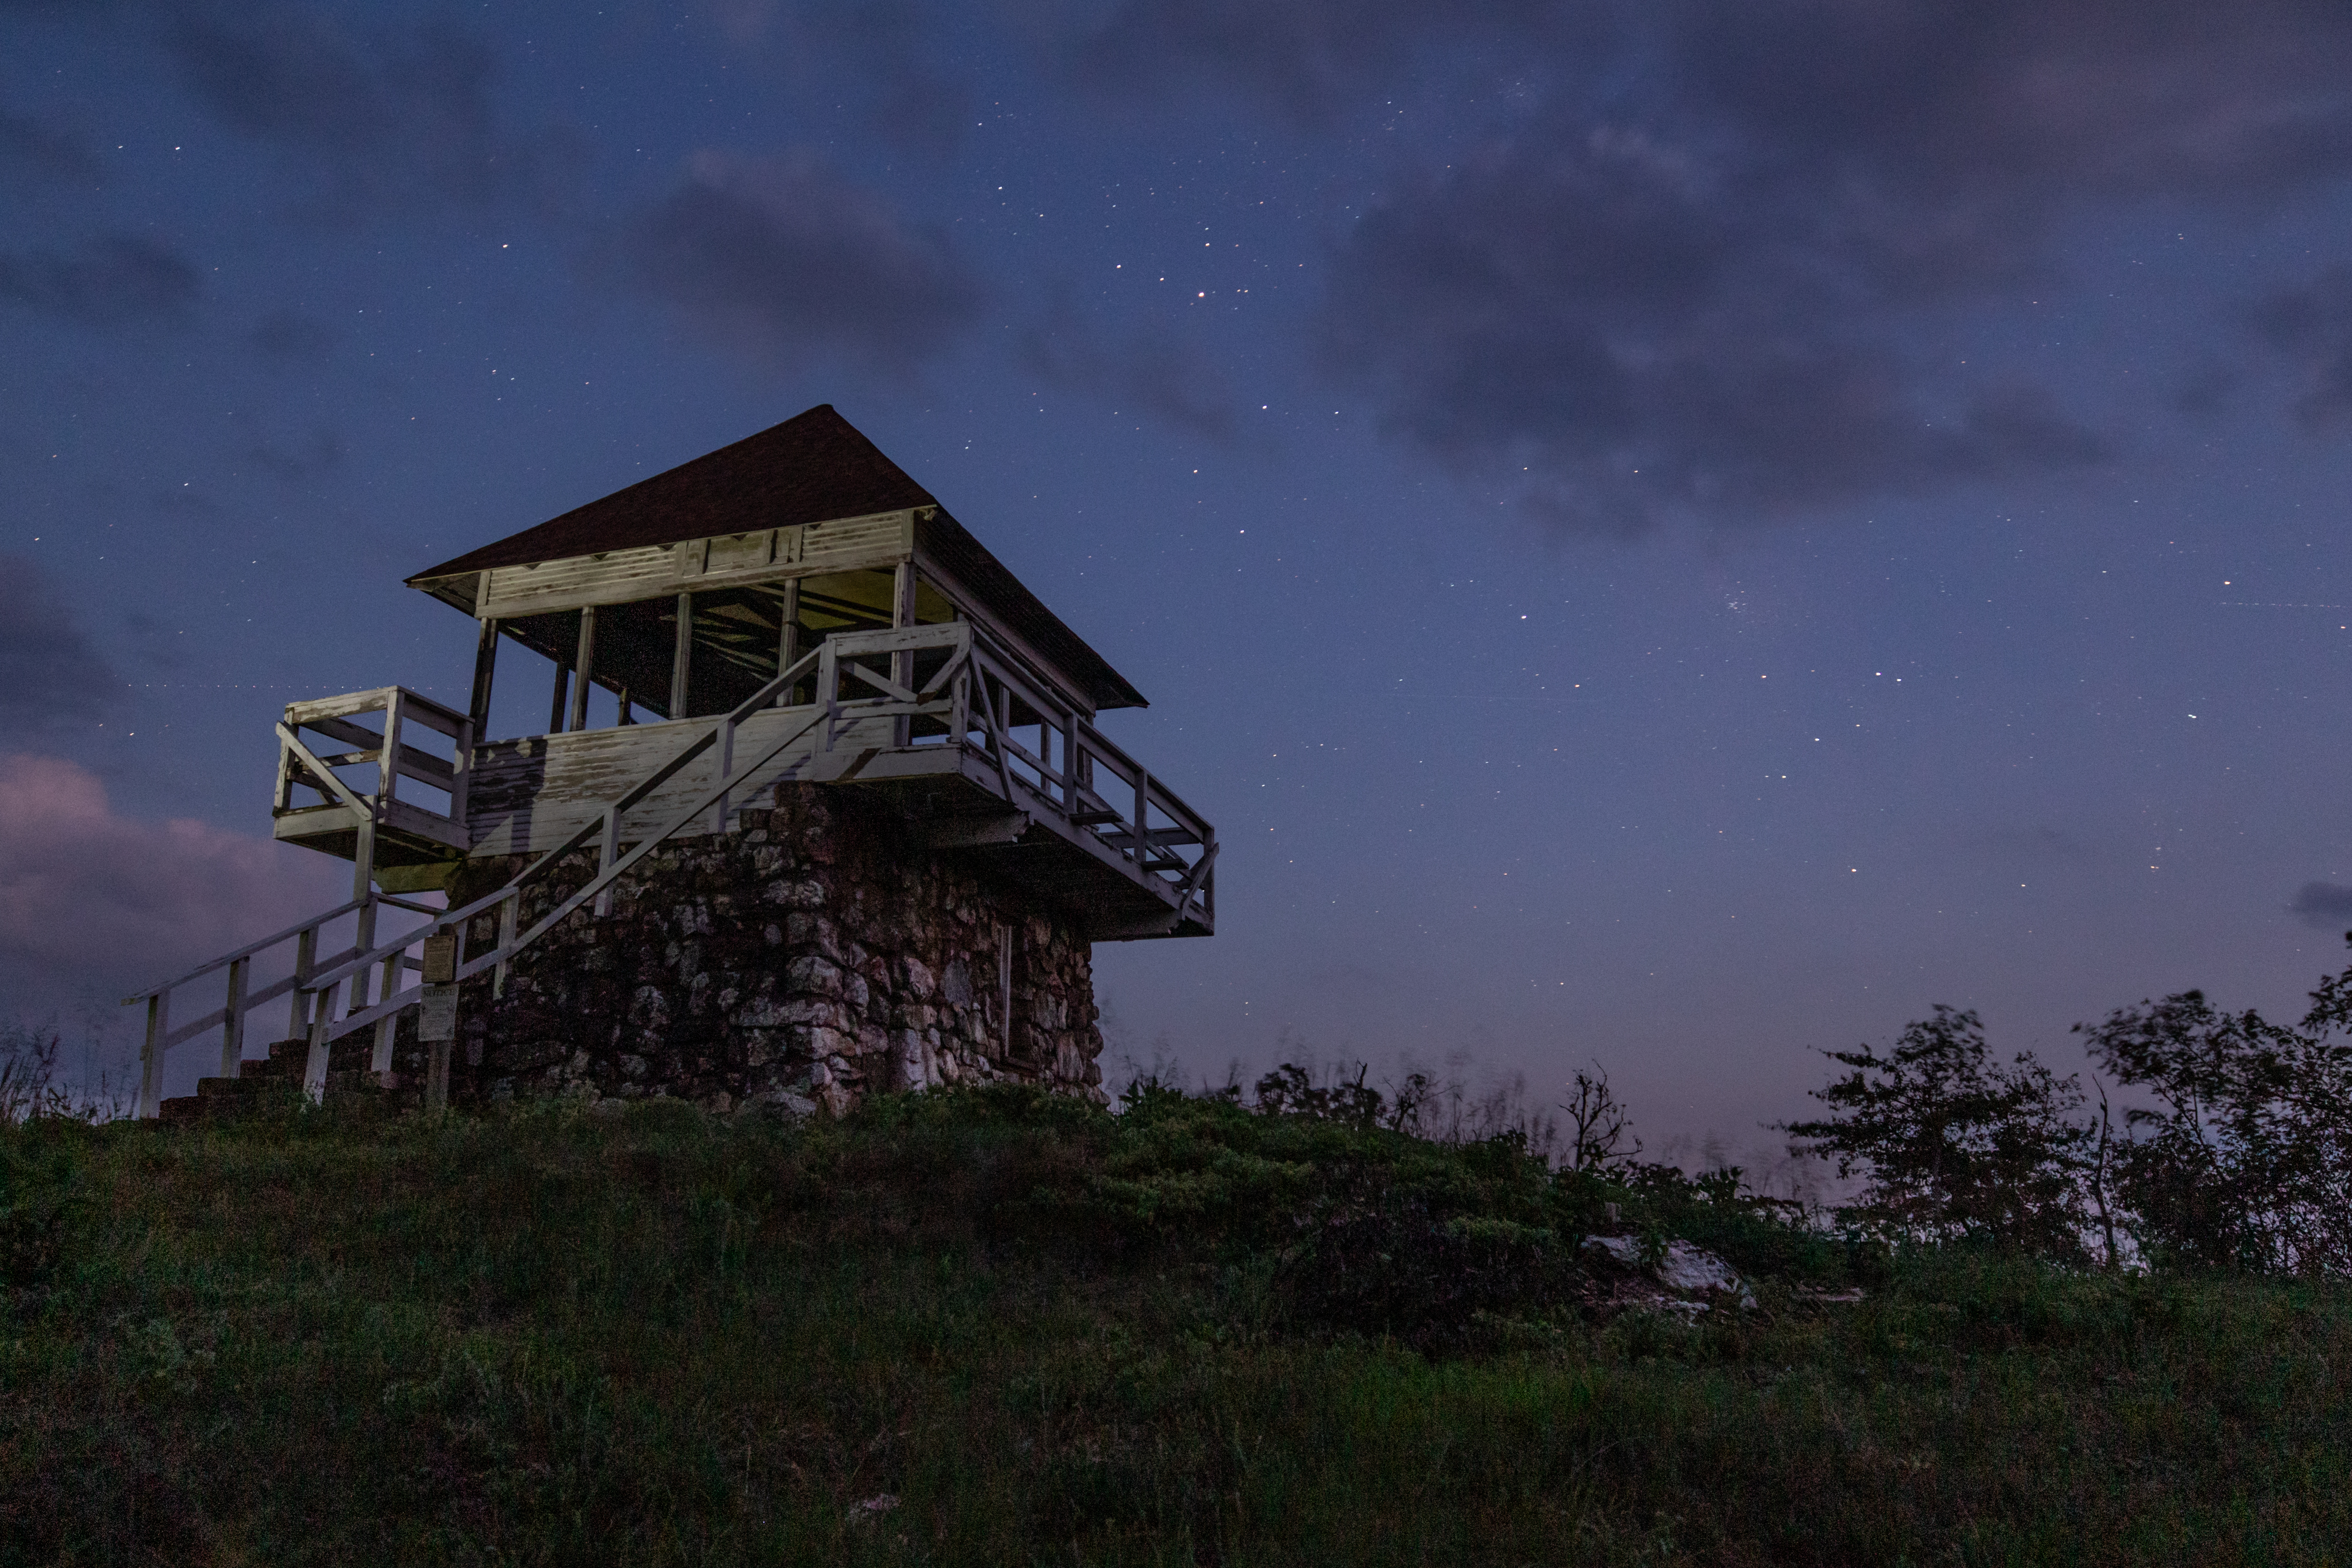 Stars coming out at dusk over Tall Peak Fire Tower in the Arkansas Ouachitas